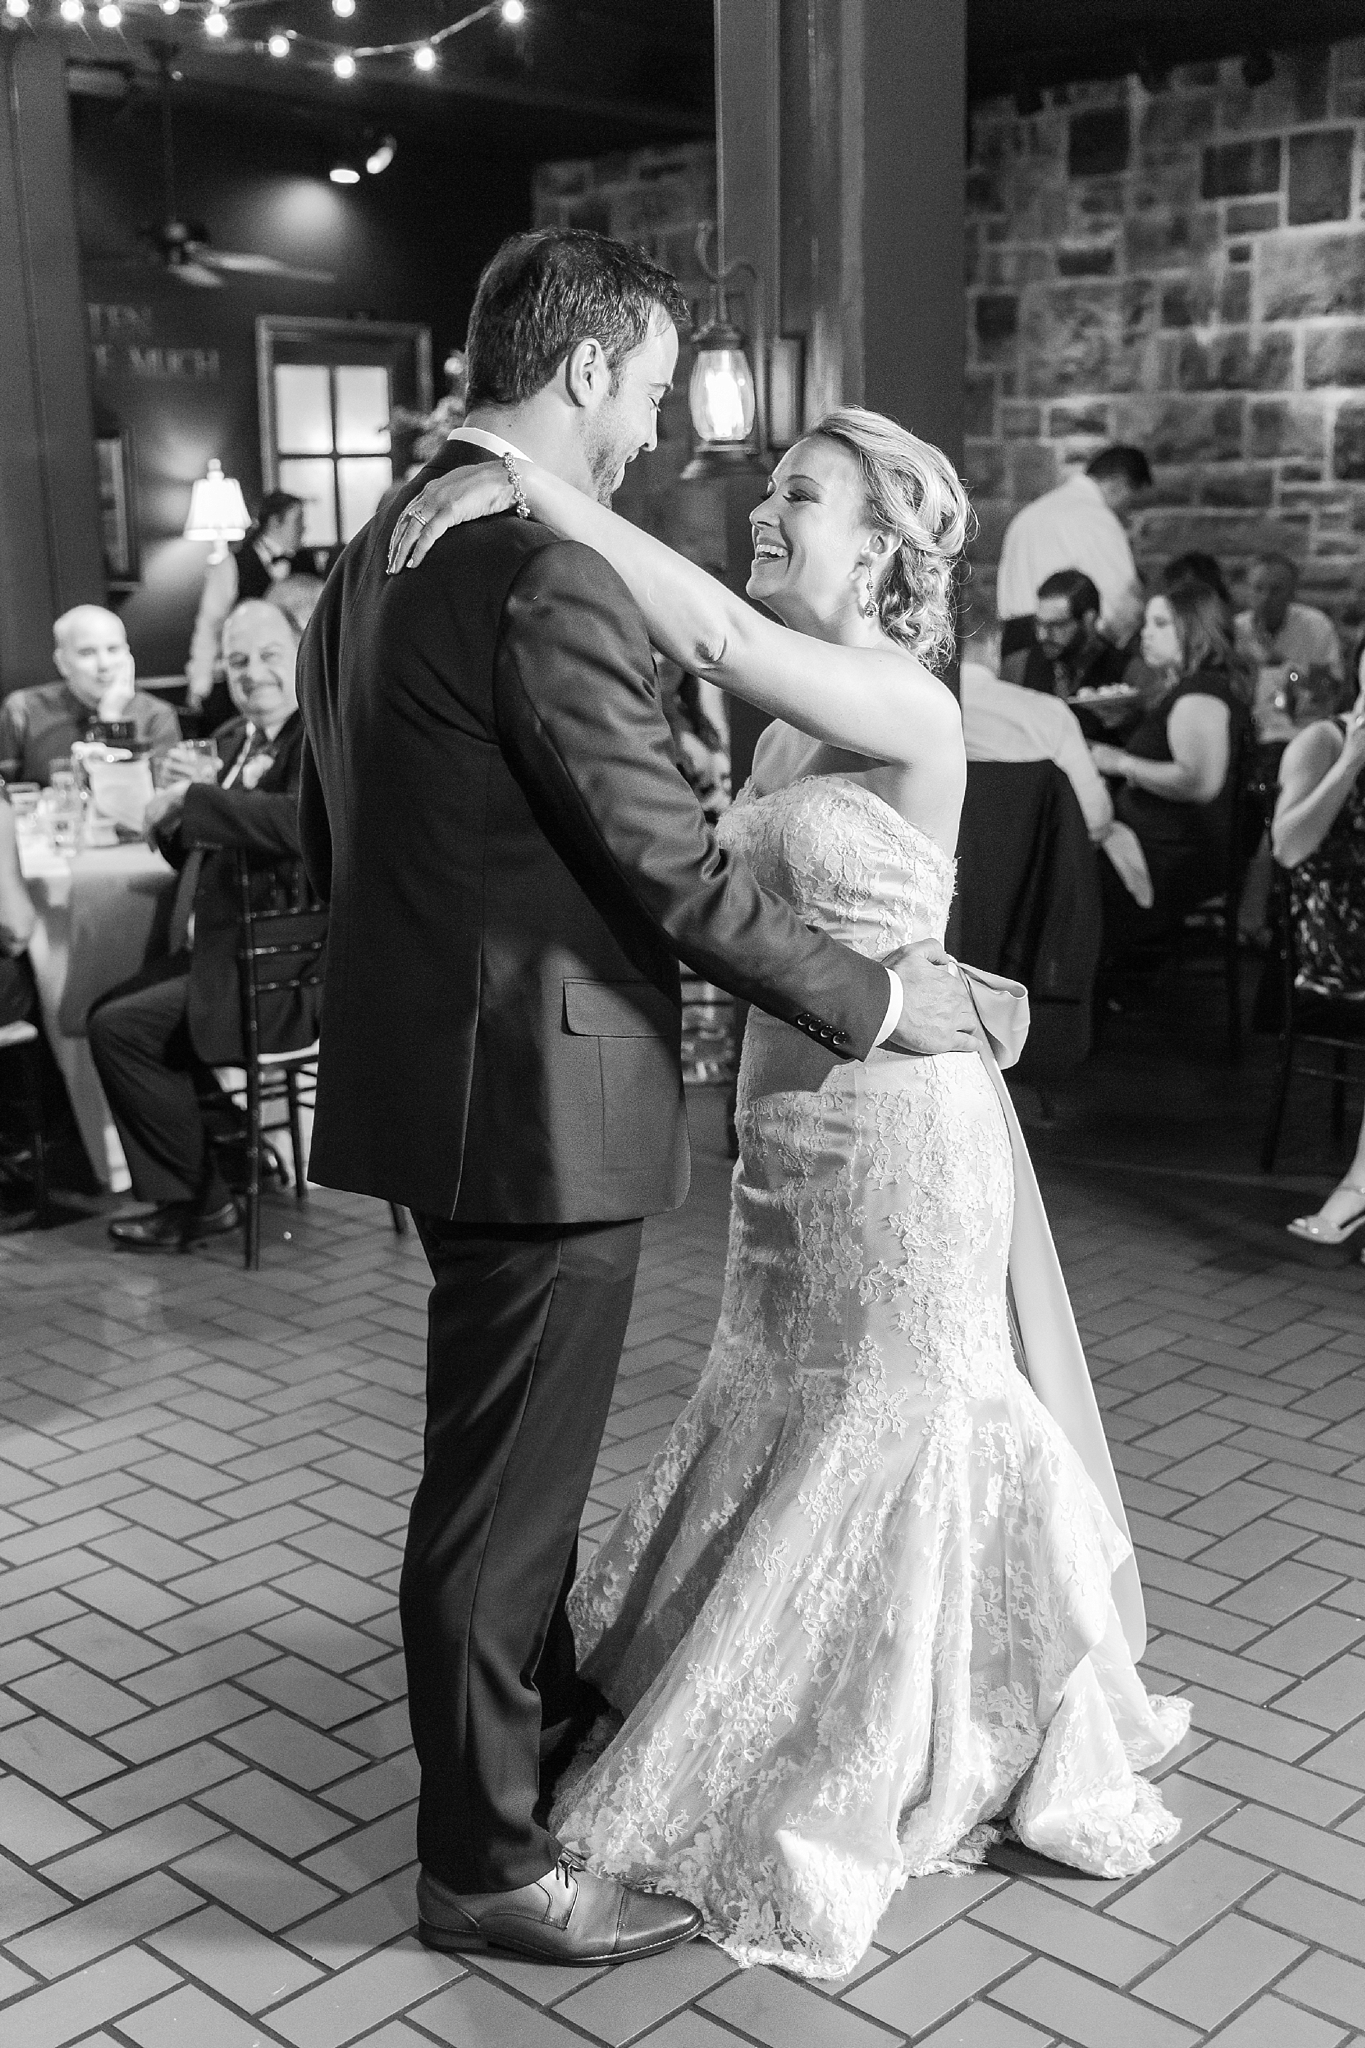 fun-candid-laid-back-wedding-photos-at-wellers-carriage-house-in-saline-michigan-and-at-the-eagle-crest-golf-resort-by-courtney-carolyn-photography_0090.jpg